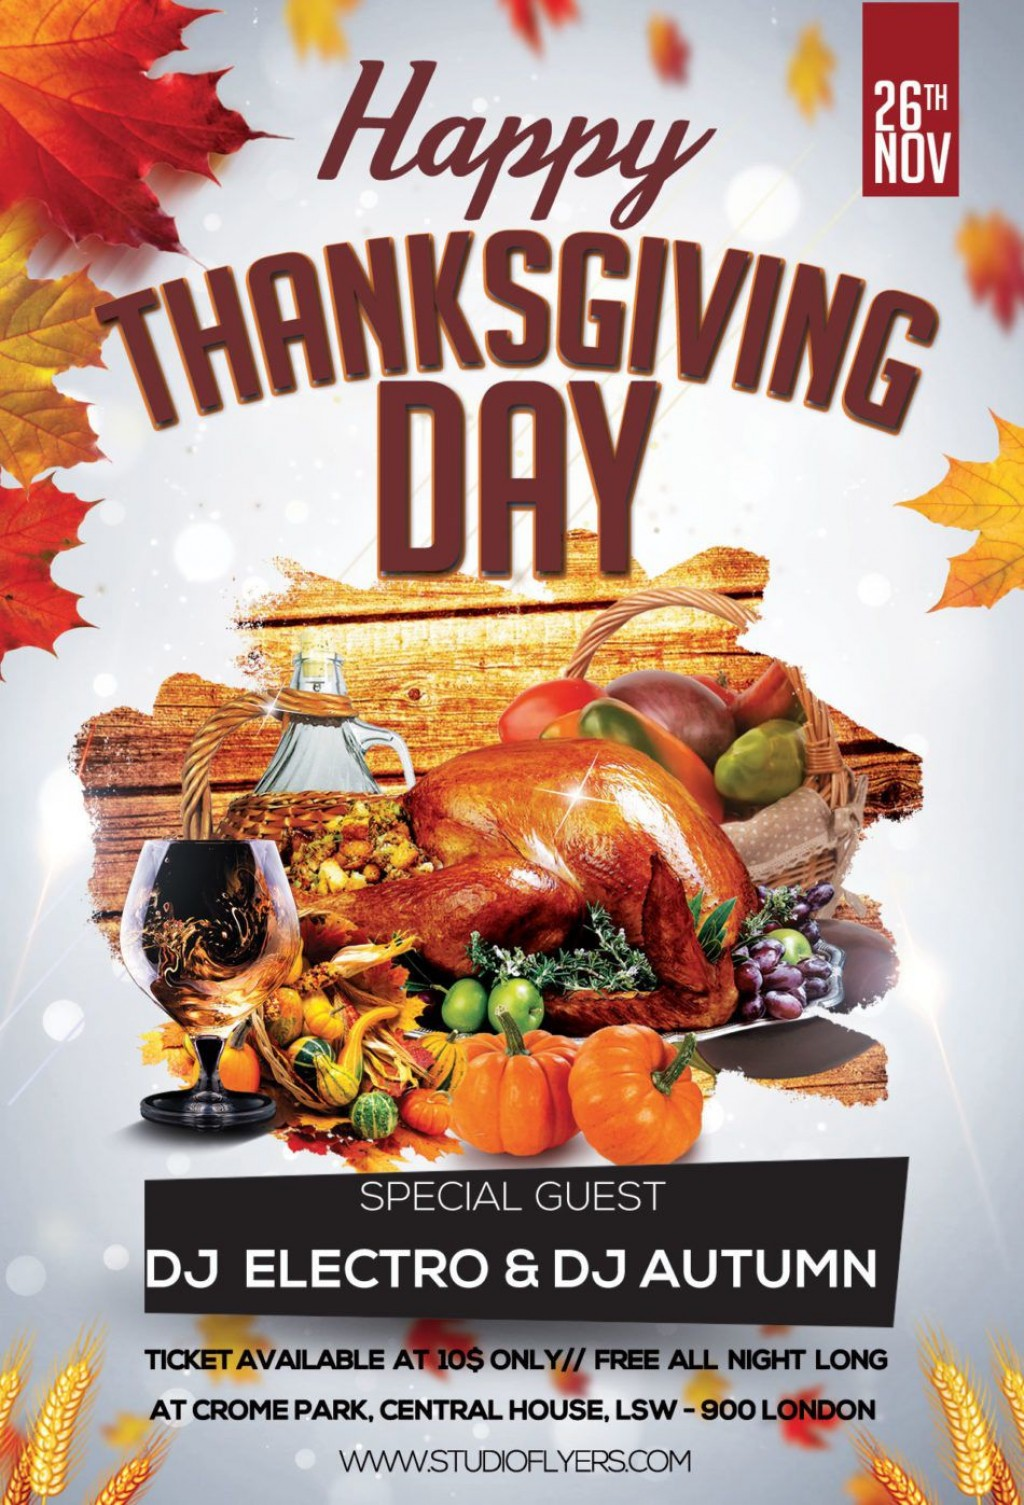 007 Fantastic Thanksgiving Flyer Template Free Example  Food Drive PartyLarge